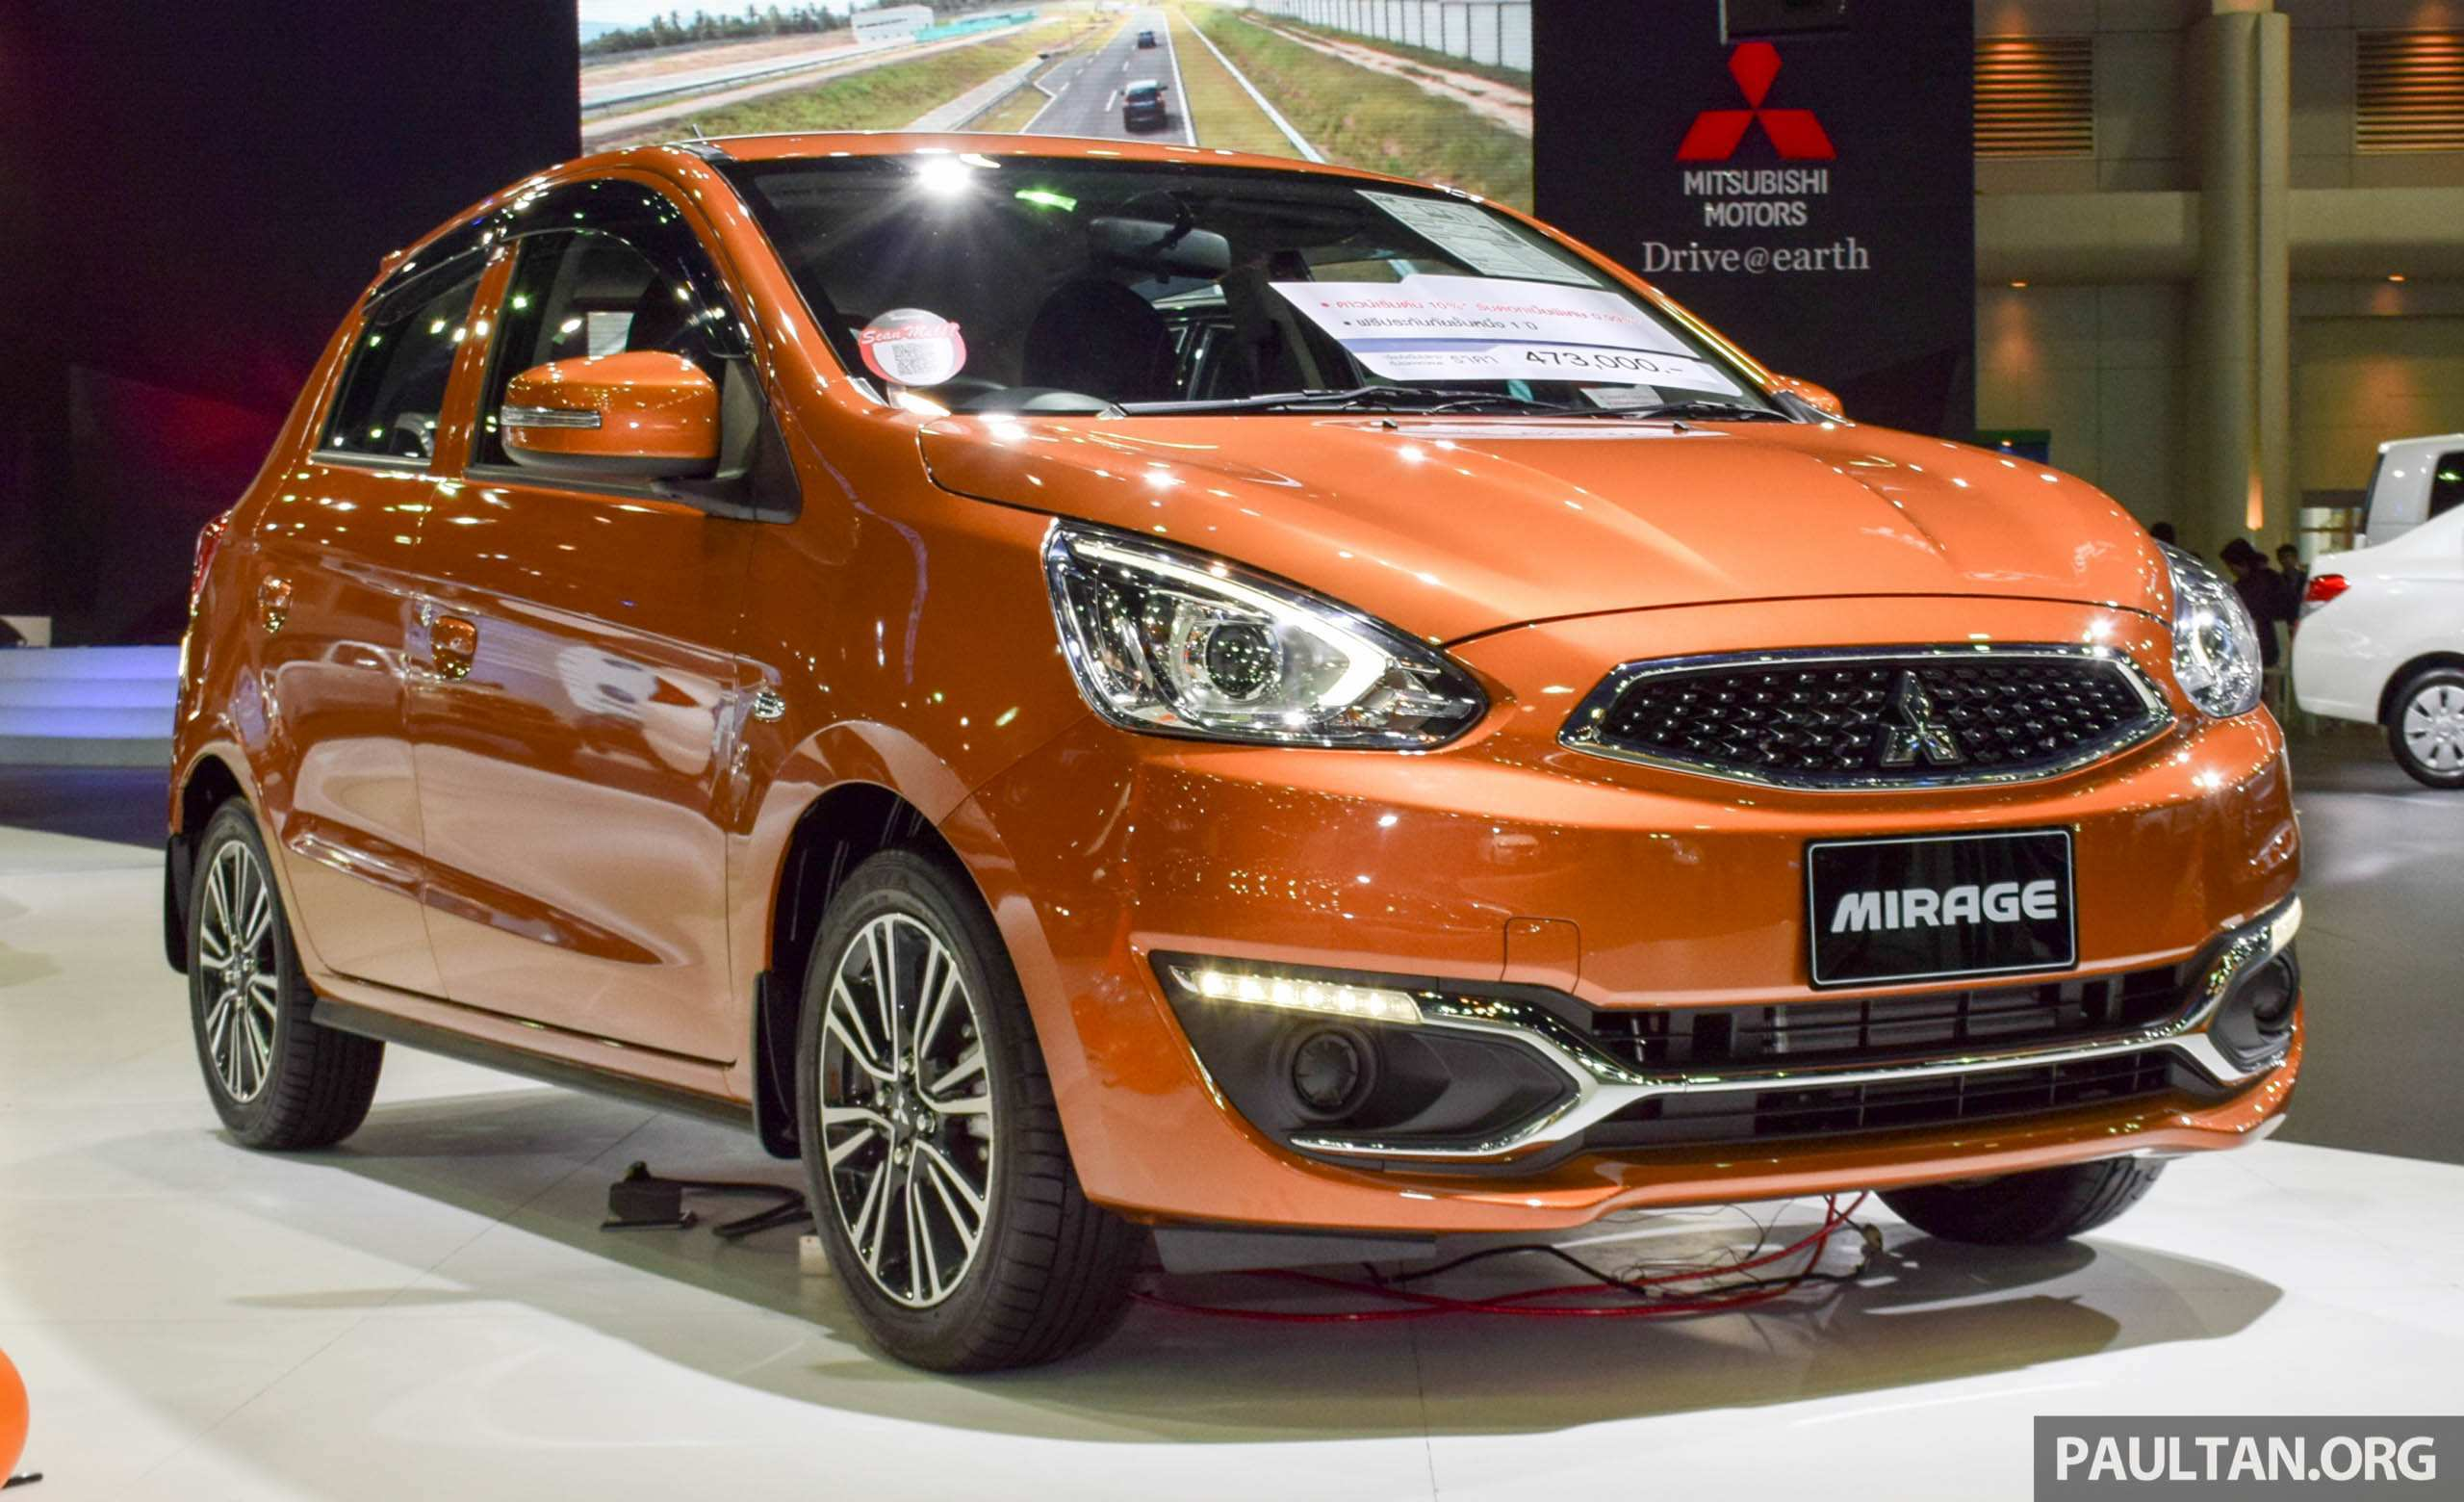 21 All New 2019 Mitsubishi Mirage Review Price And Release Date